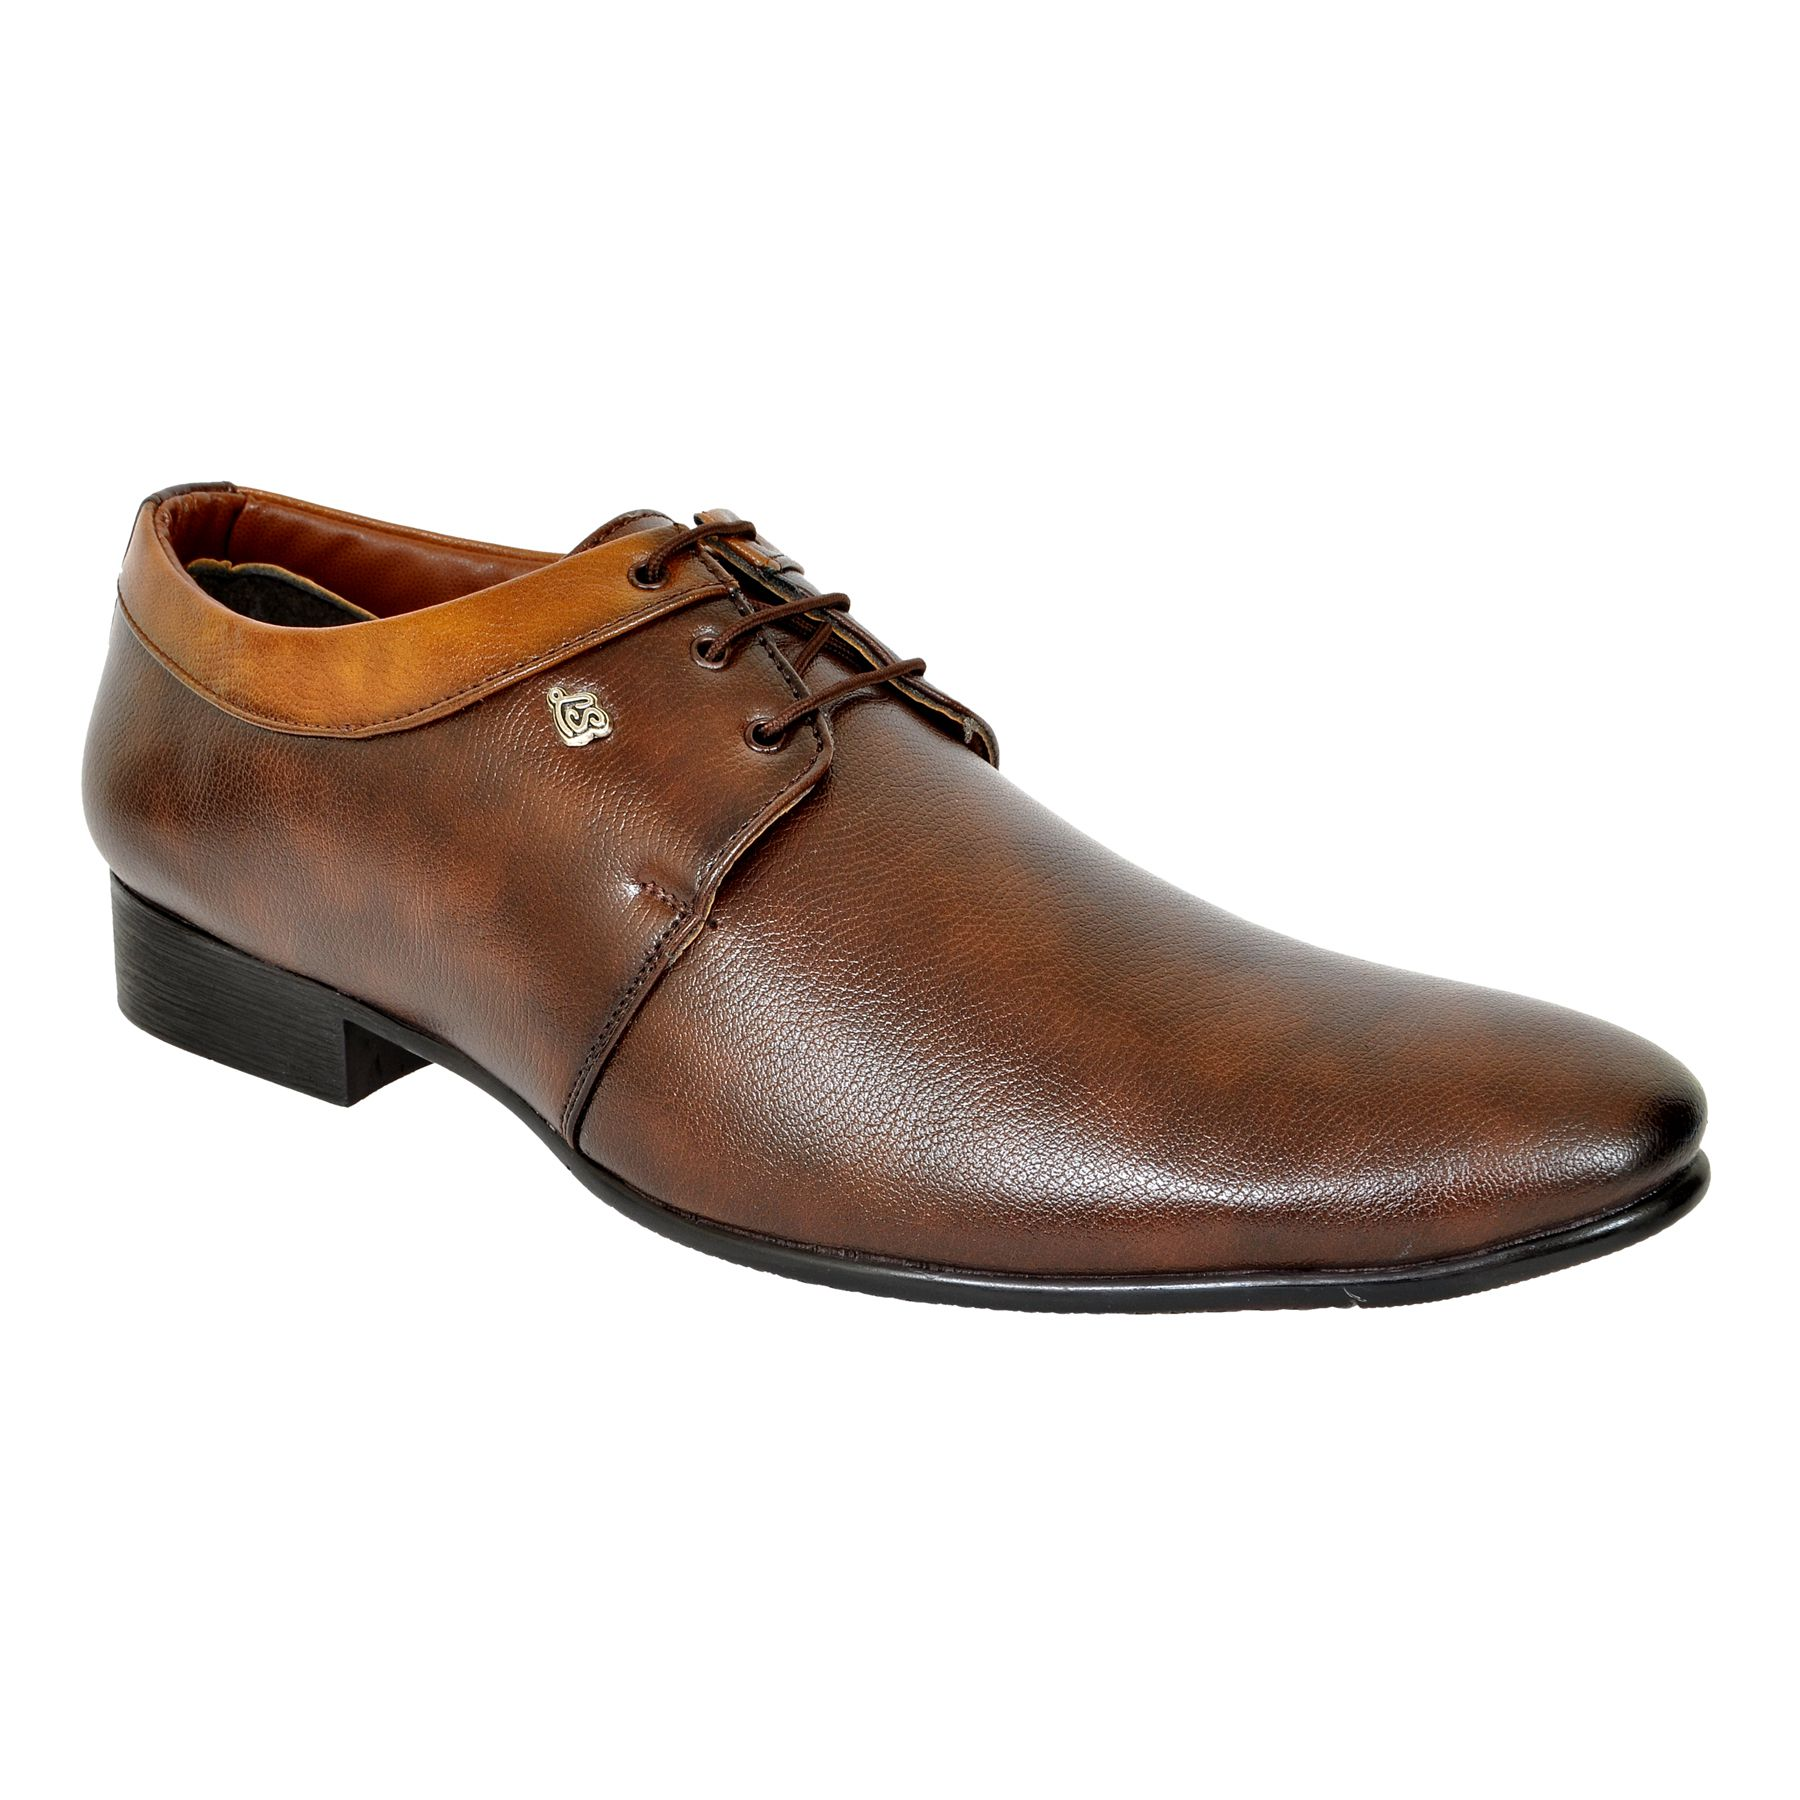 Lee Fox Derby Genuine Leather Formal Shoes Price in India Buy Lee